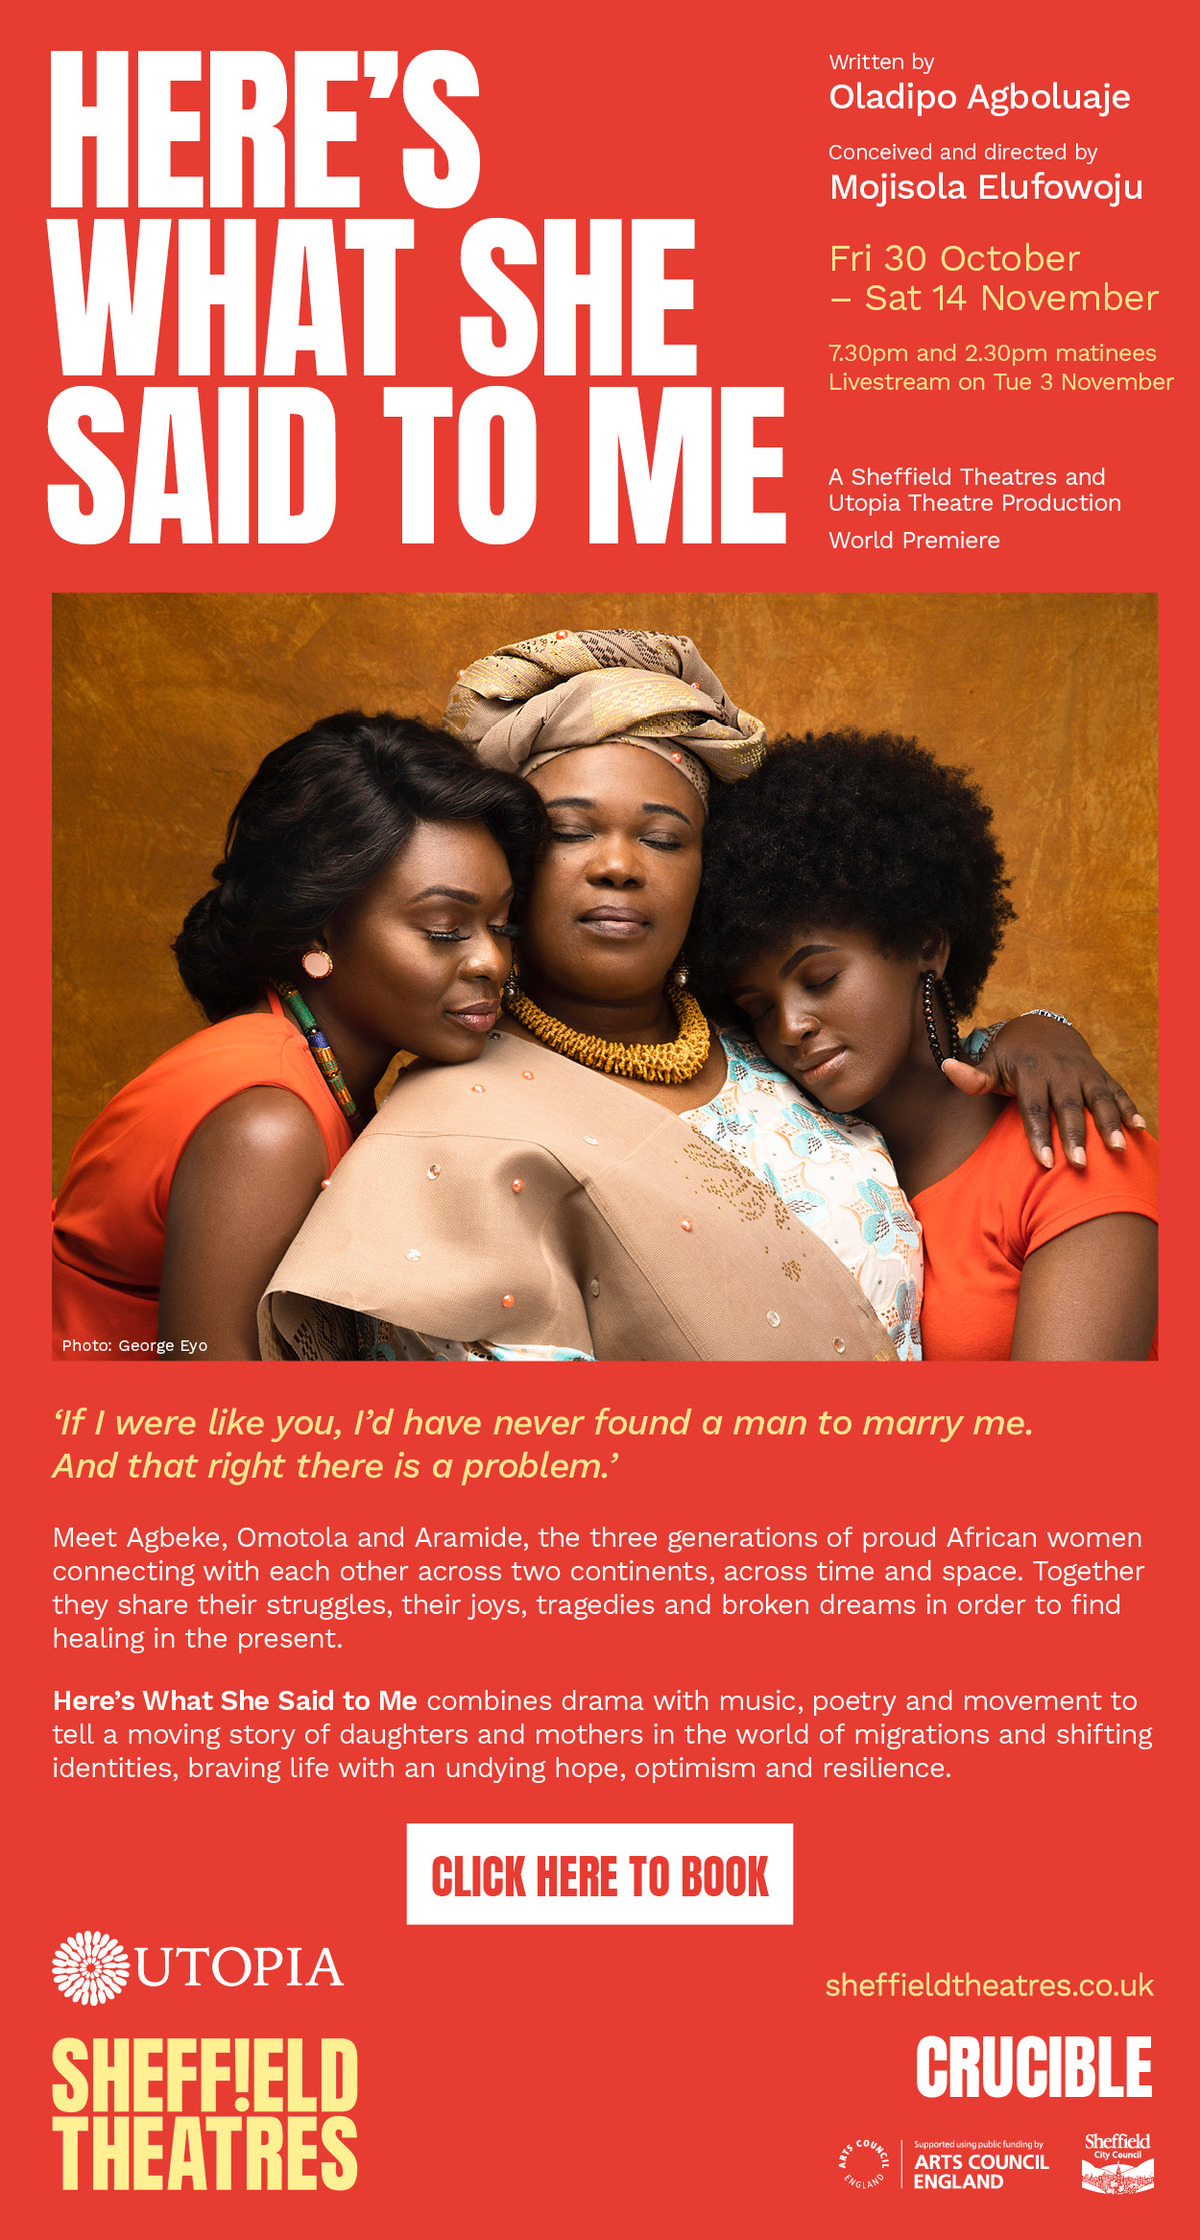 SHEFFIELD THEATRES ANNOUNCES CASTING FOR 'HERE'S WHAT SHE SAID TO ME' By Oladipo Agboluaje